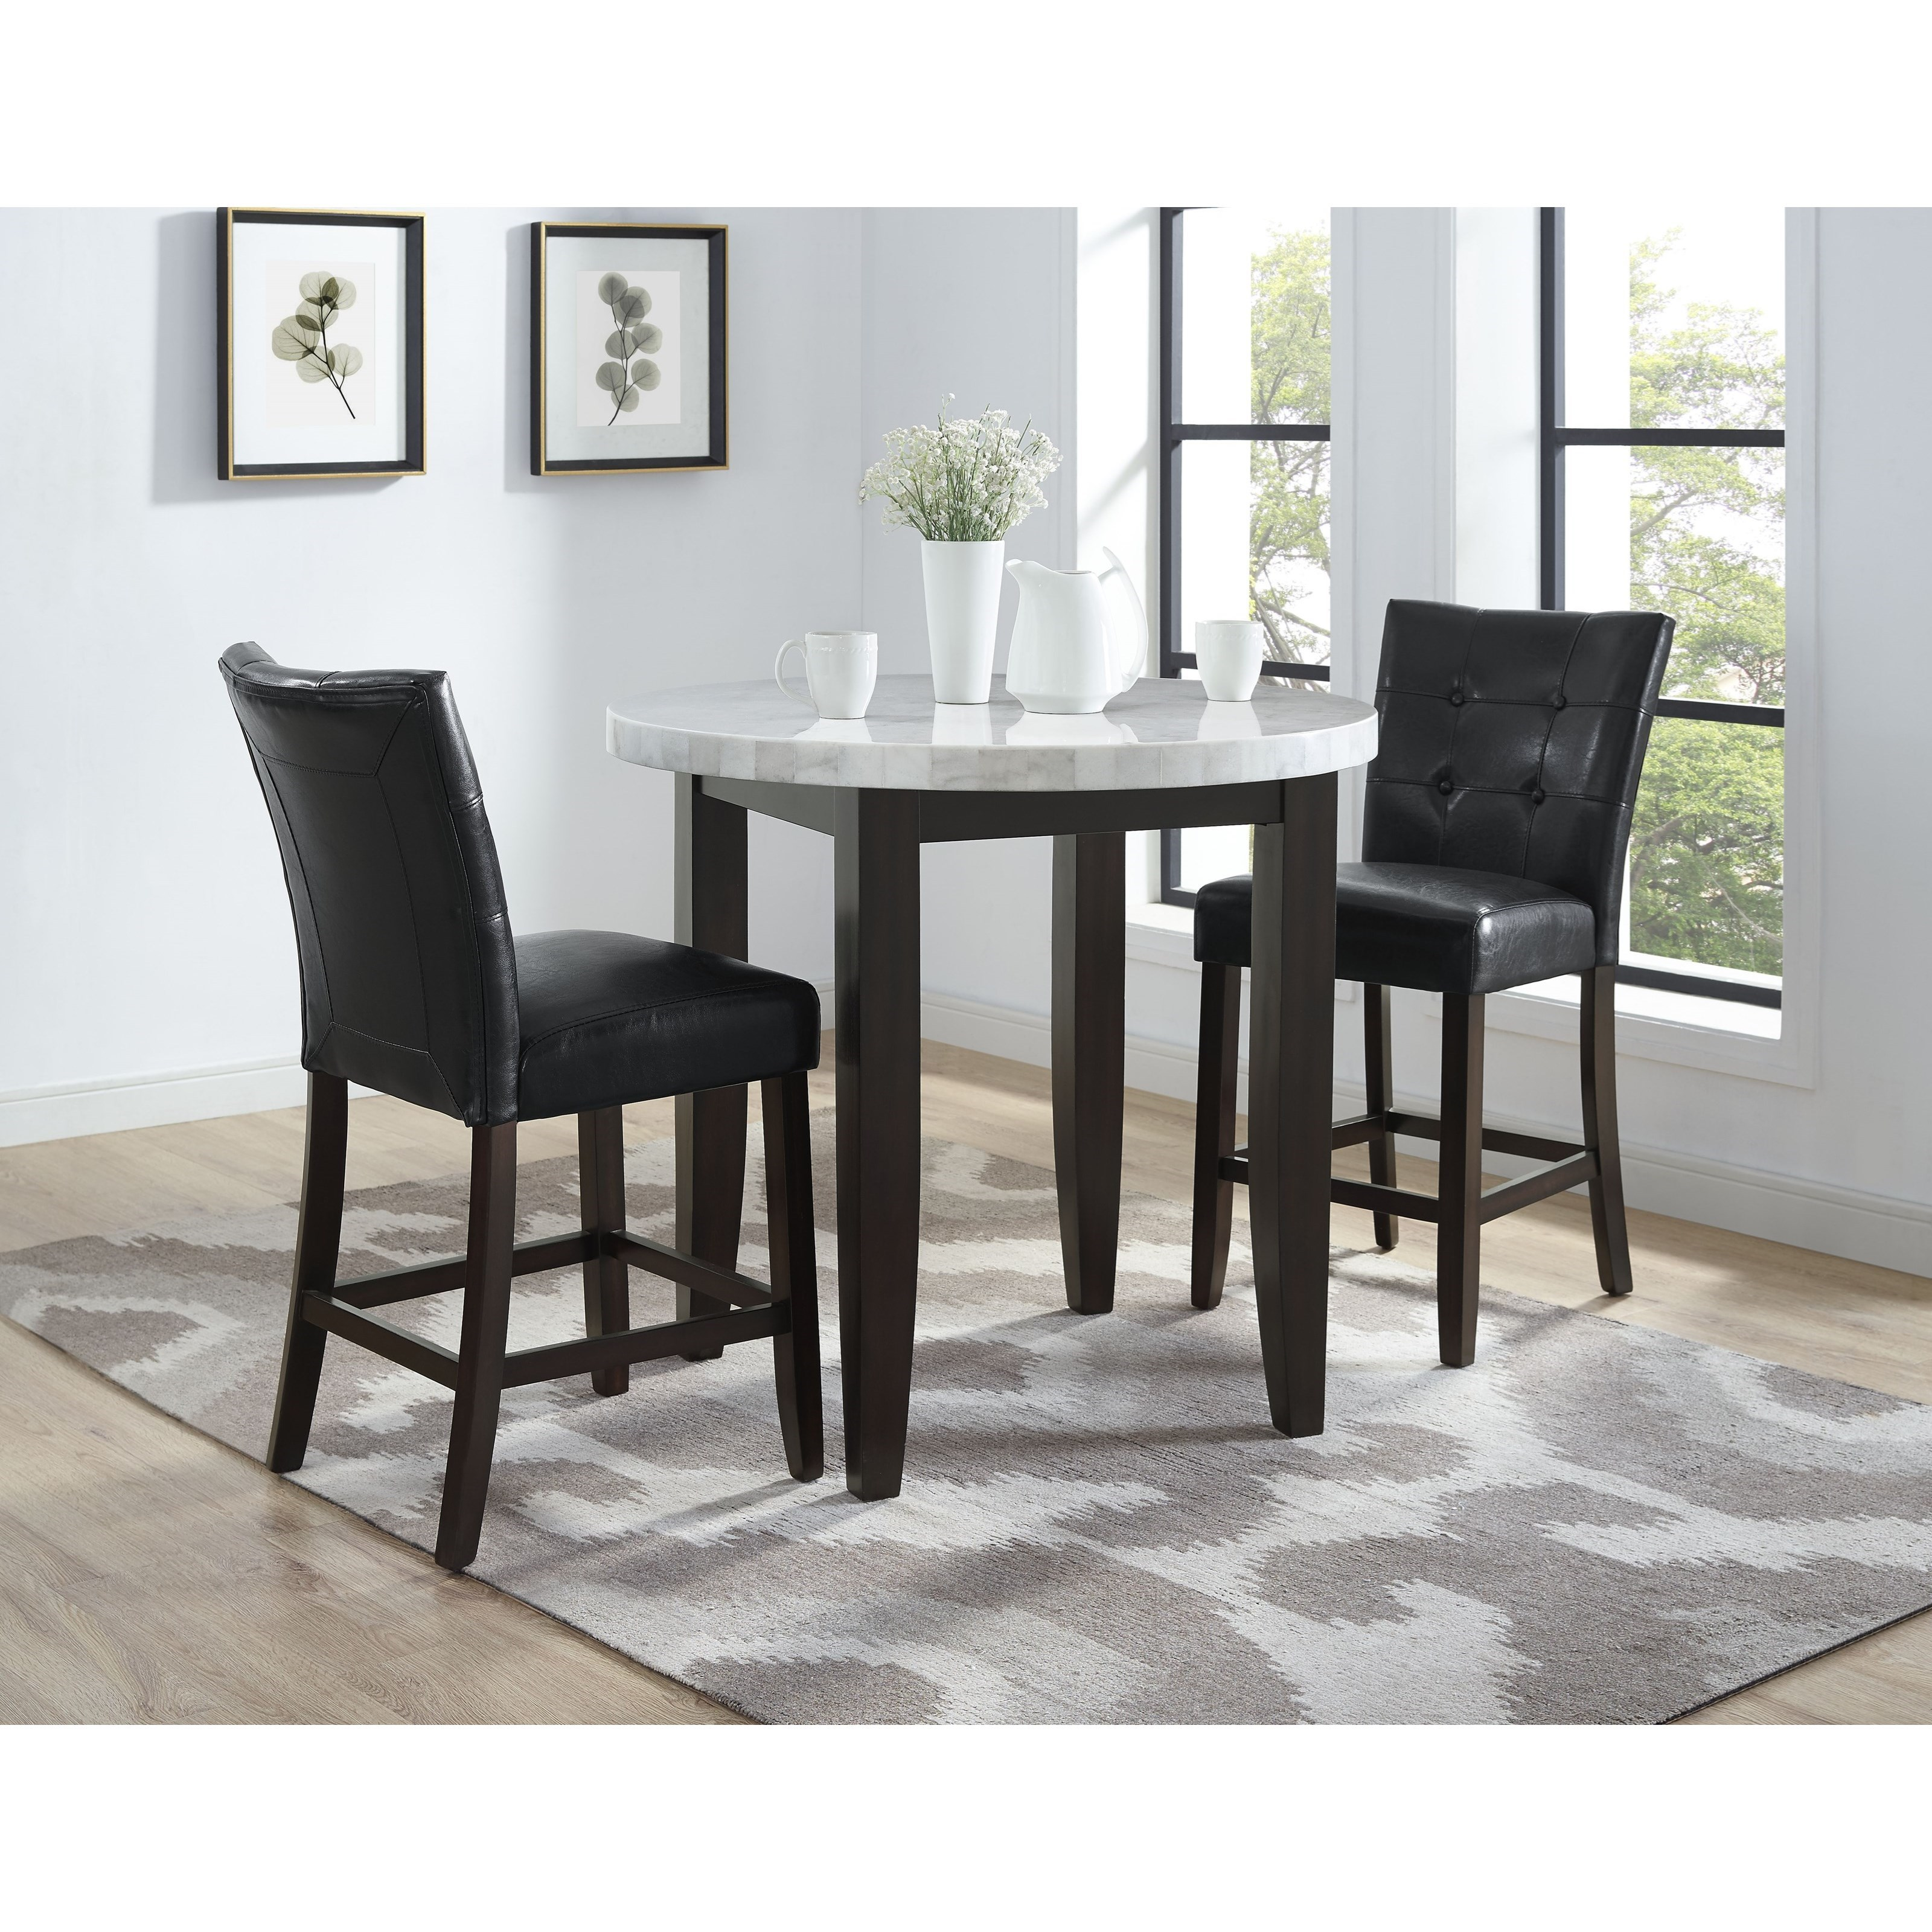 Steve Silver Francis 3 Piece Counter Height Table And Chair Set